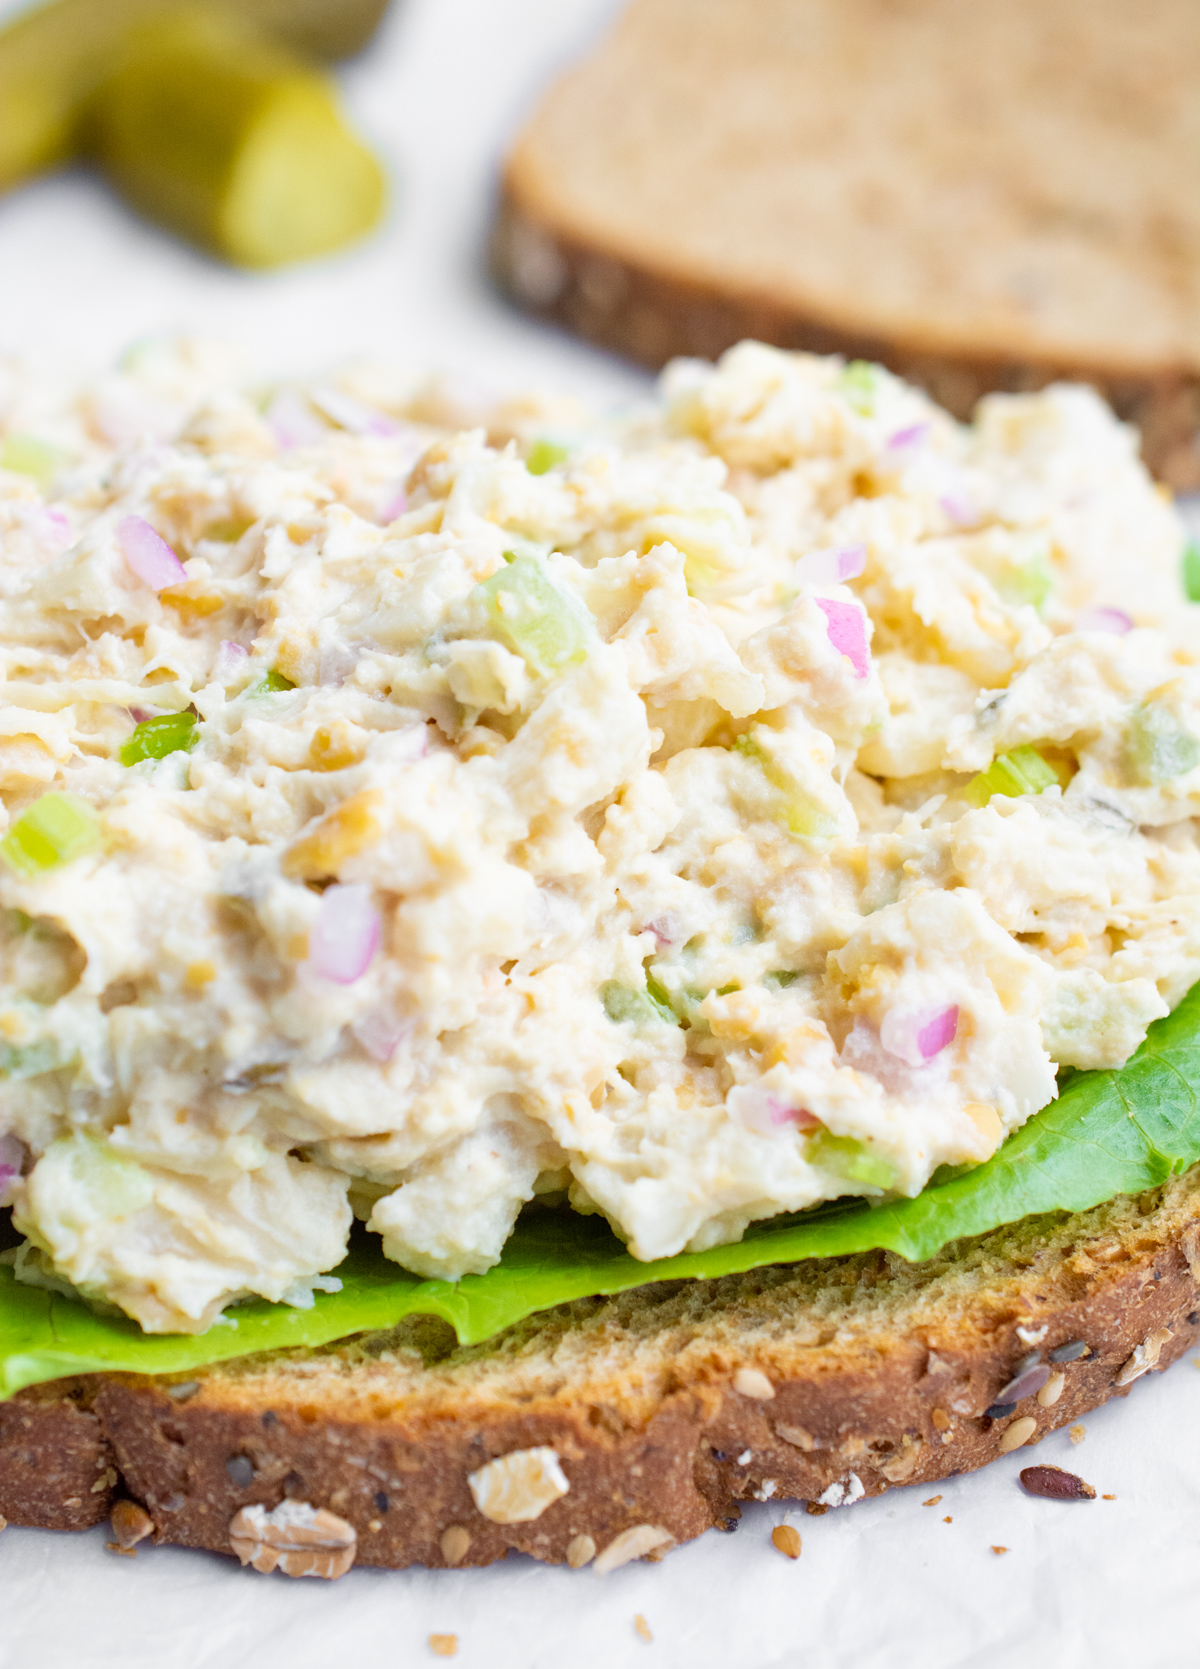 A slice of bread topped with lettuce and vegan tuna salad.